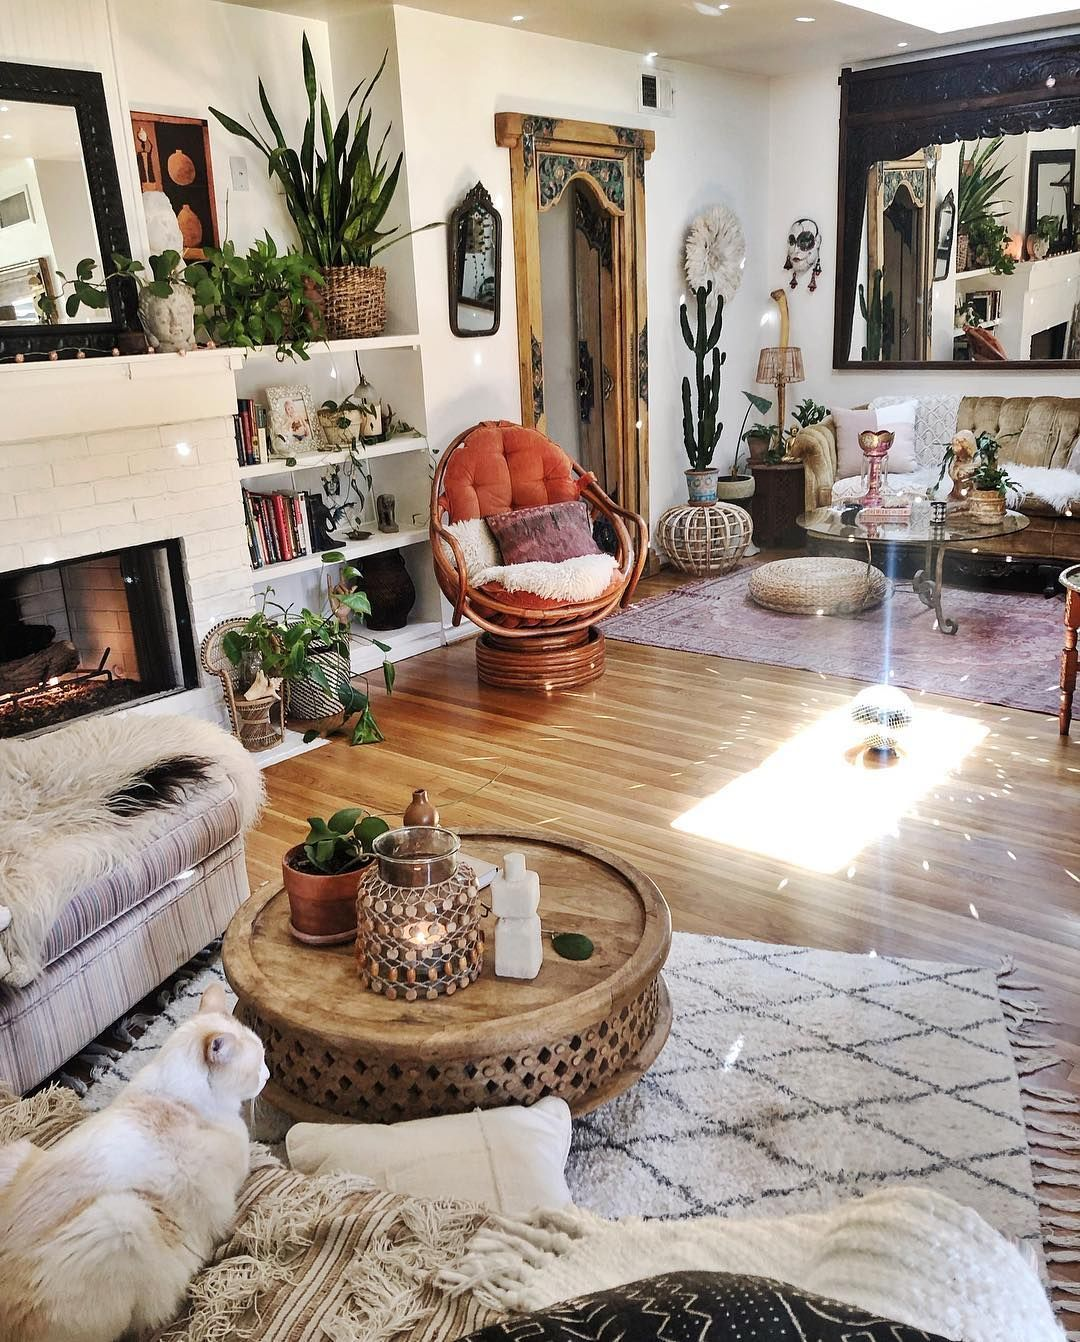 Boho Living Room Decor Plants Rug Textures In 2020 Boho Living Room Decor Boho Living Room Room Decor